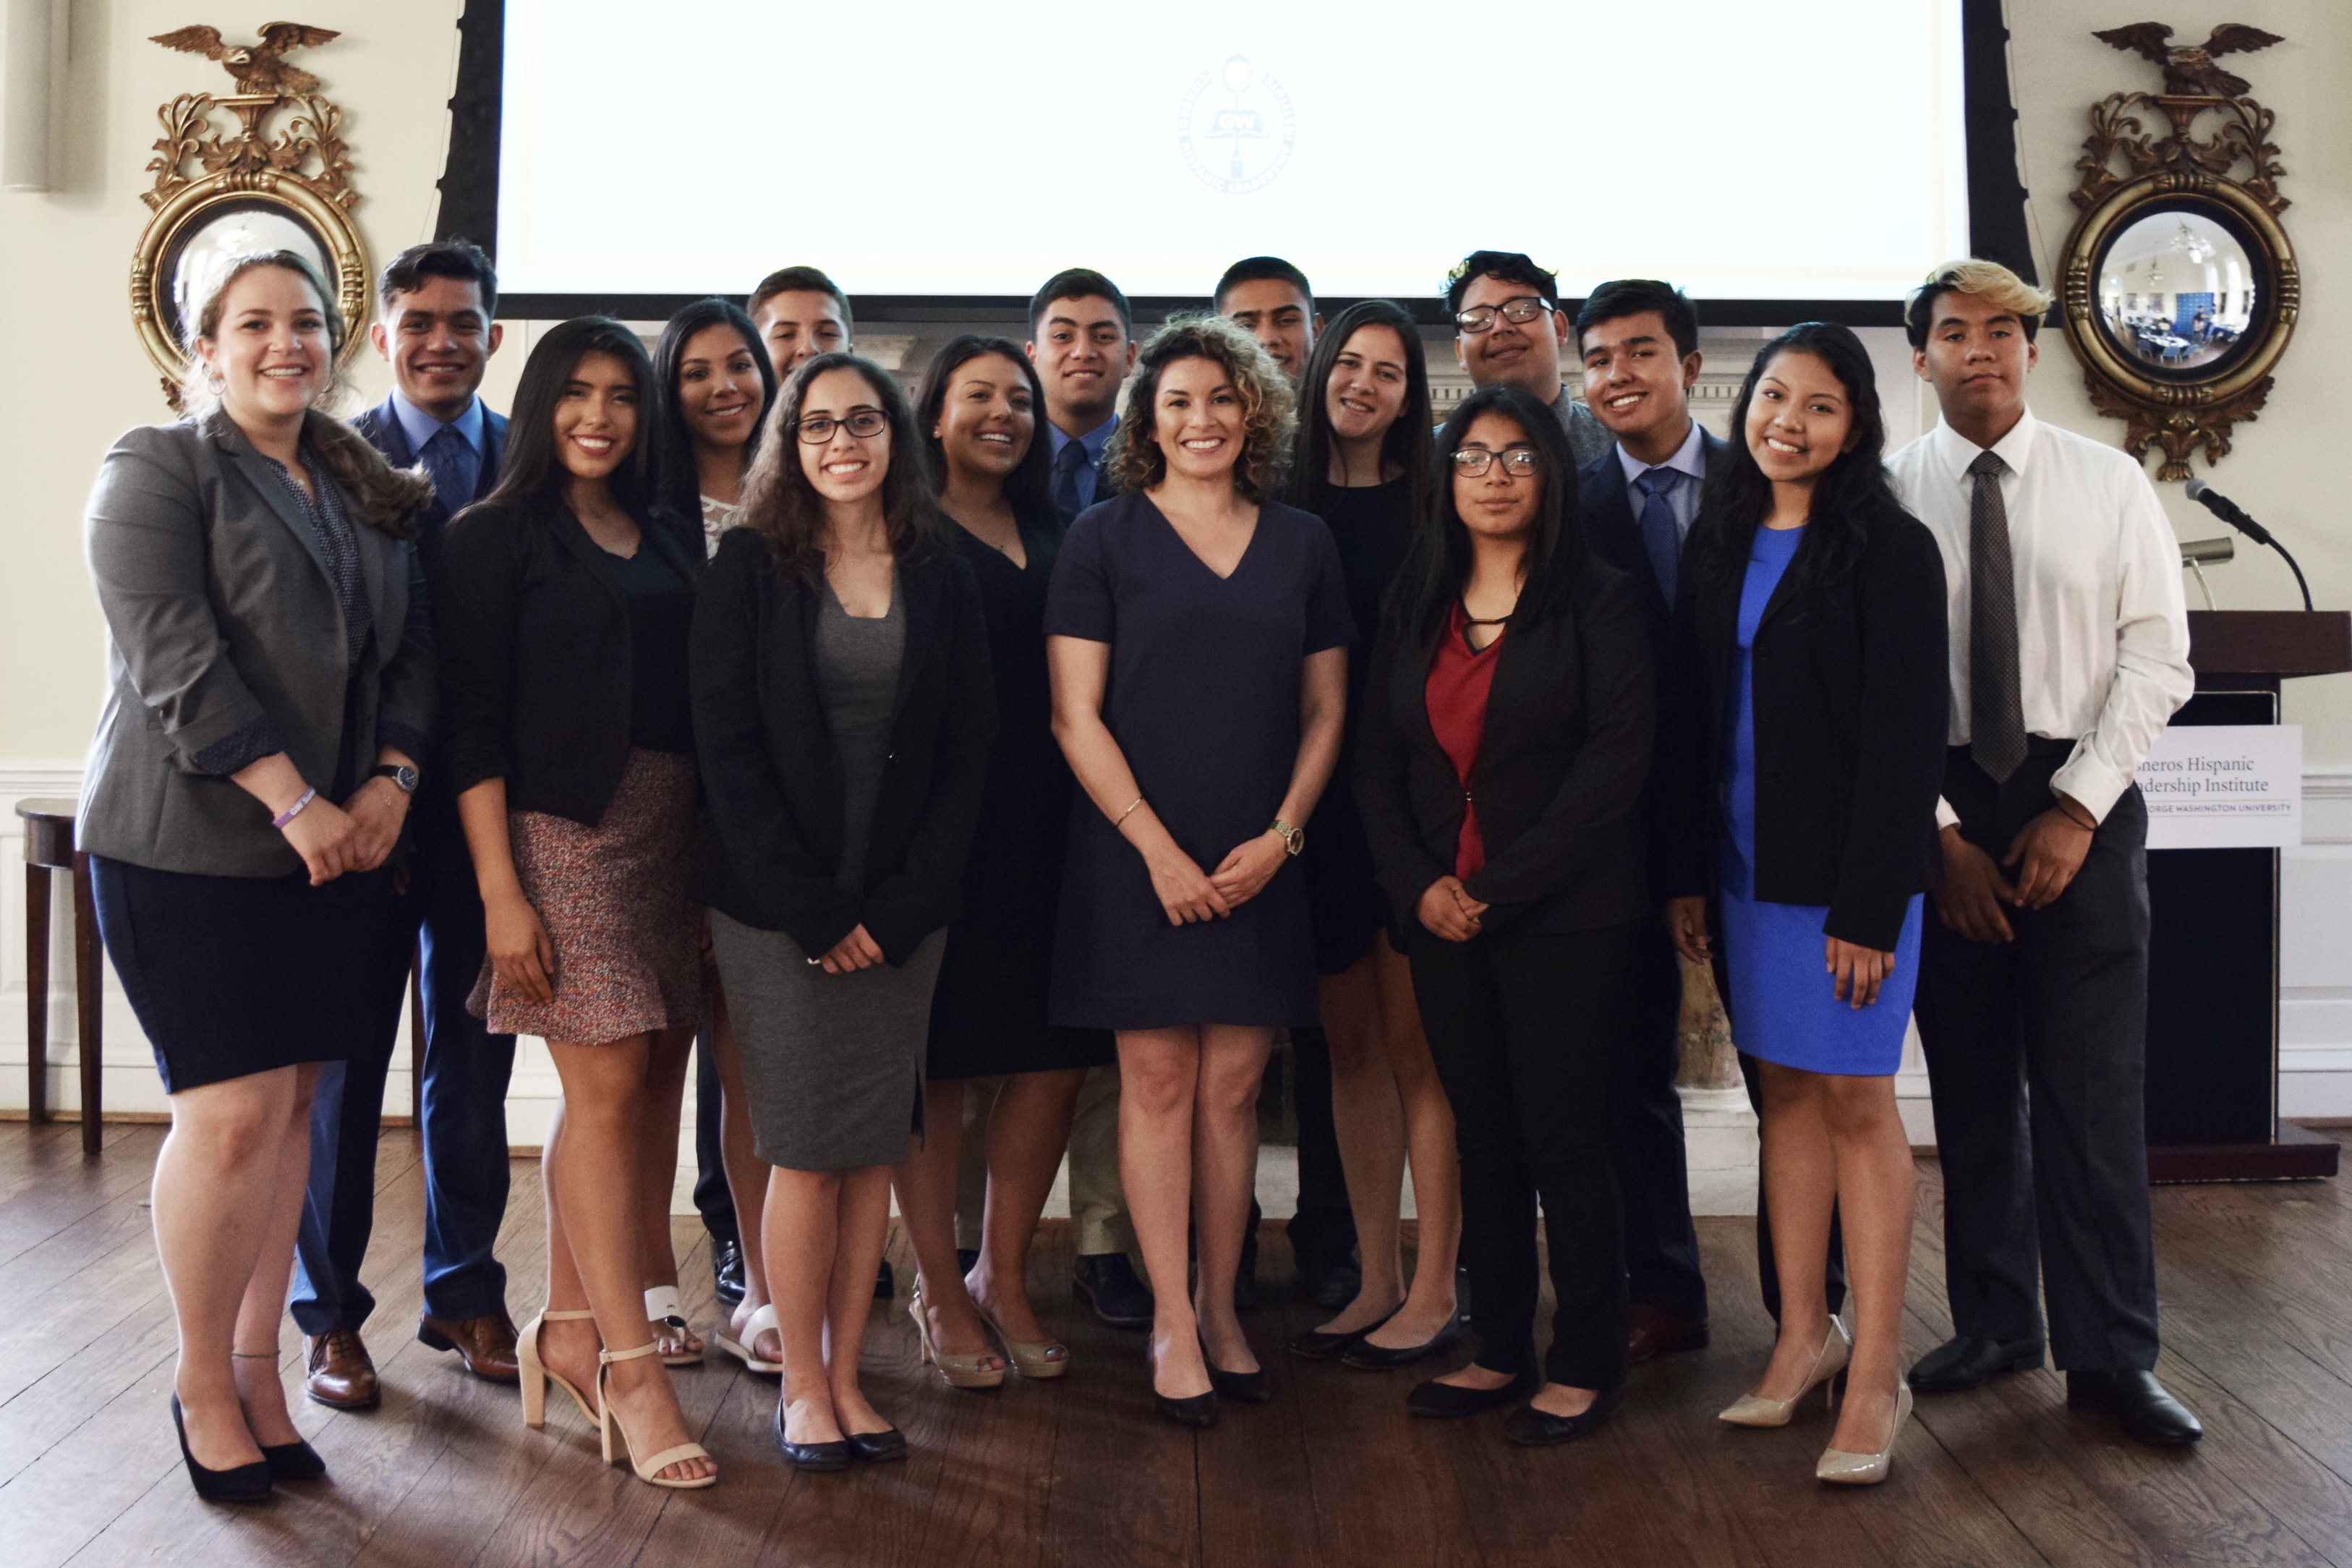 María Samaniego, Program Manager at the Aspen Institute Latinos and Society Program (center) poses with 2019 scholars. Photo Courtesy of Marcelo Gonzales Montoya